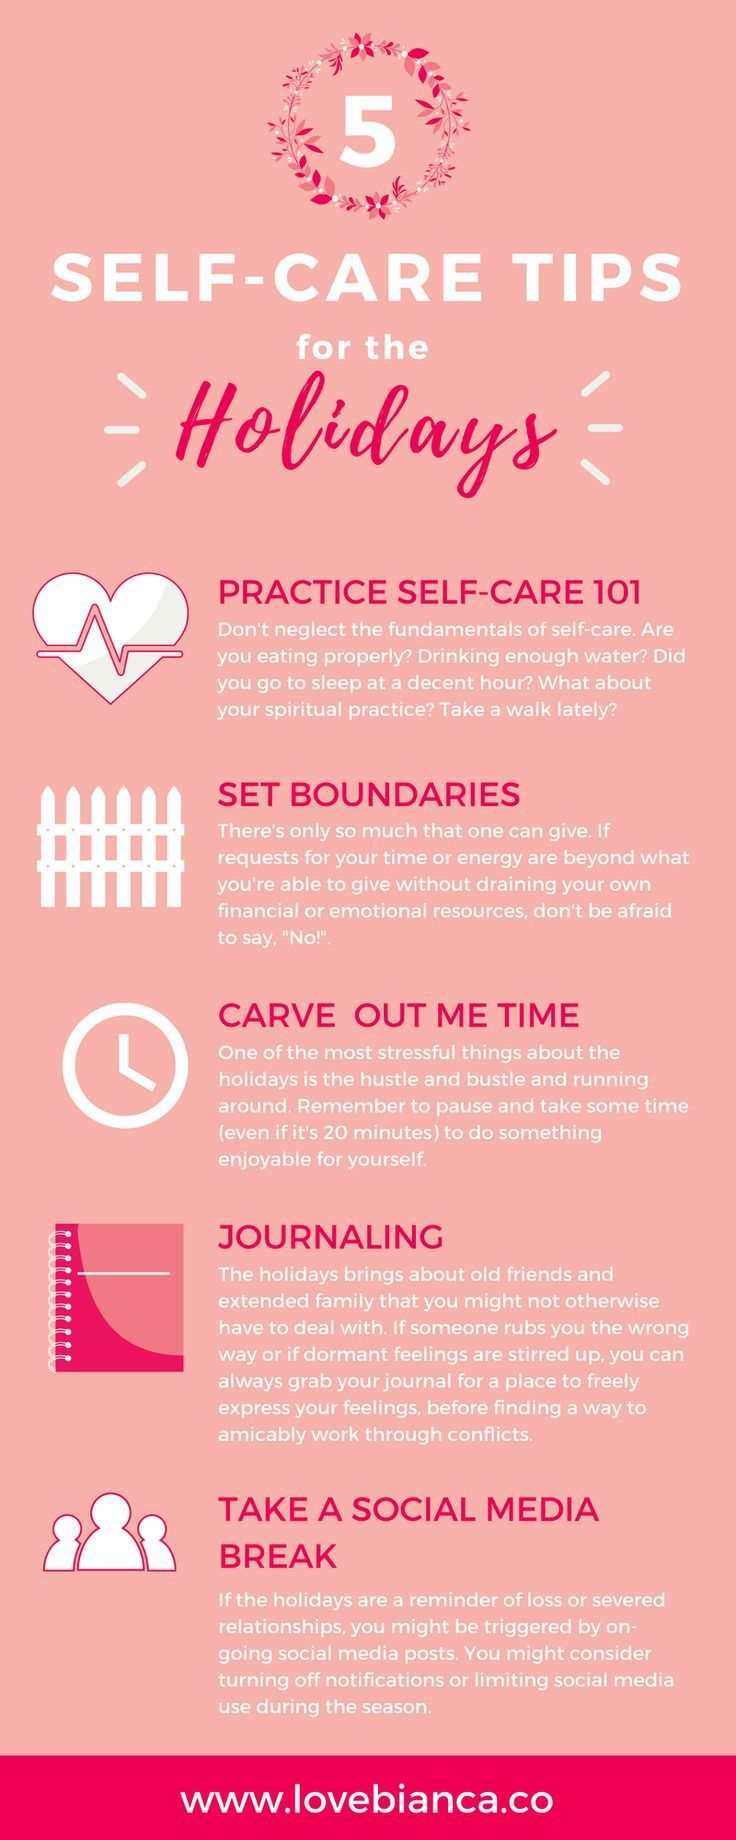 5 Self Care Tips to Practice During the Holidays – Coping with Holiday Stress